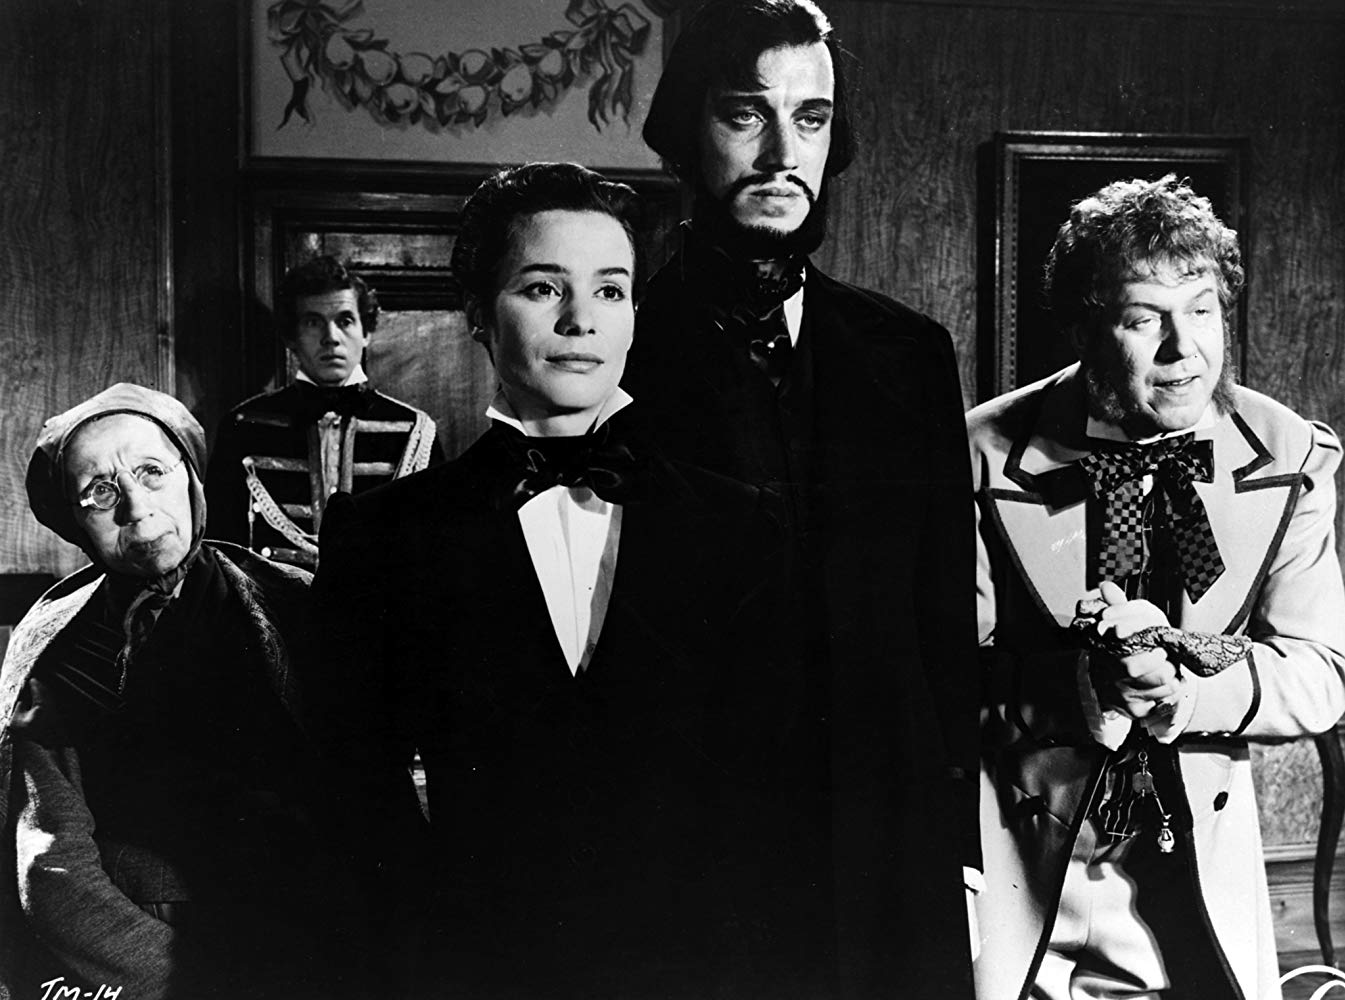 The arrival of Vogler's Magnetic Health Theater - (l to r) Granny (Naima Wifstrand), Manda (Ingrid Thulin), Vogler (Max Von Sydow) and Tubal (Åke Fridell) in The Magician (1958)